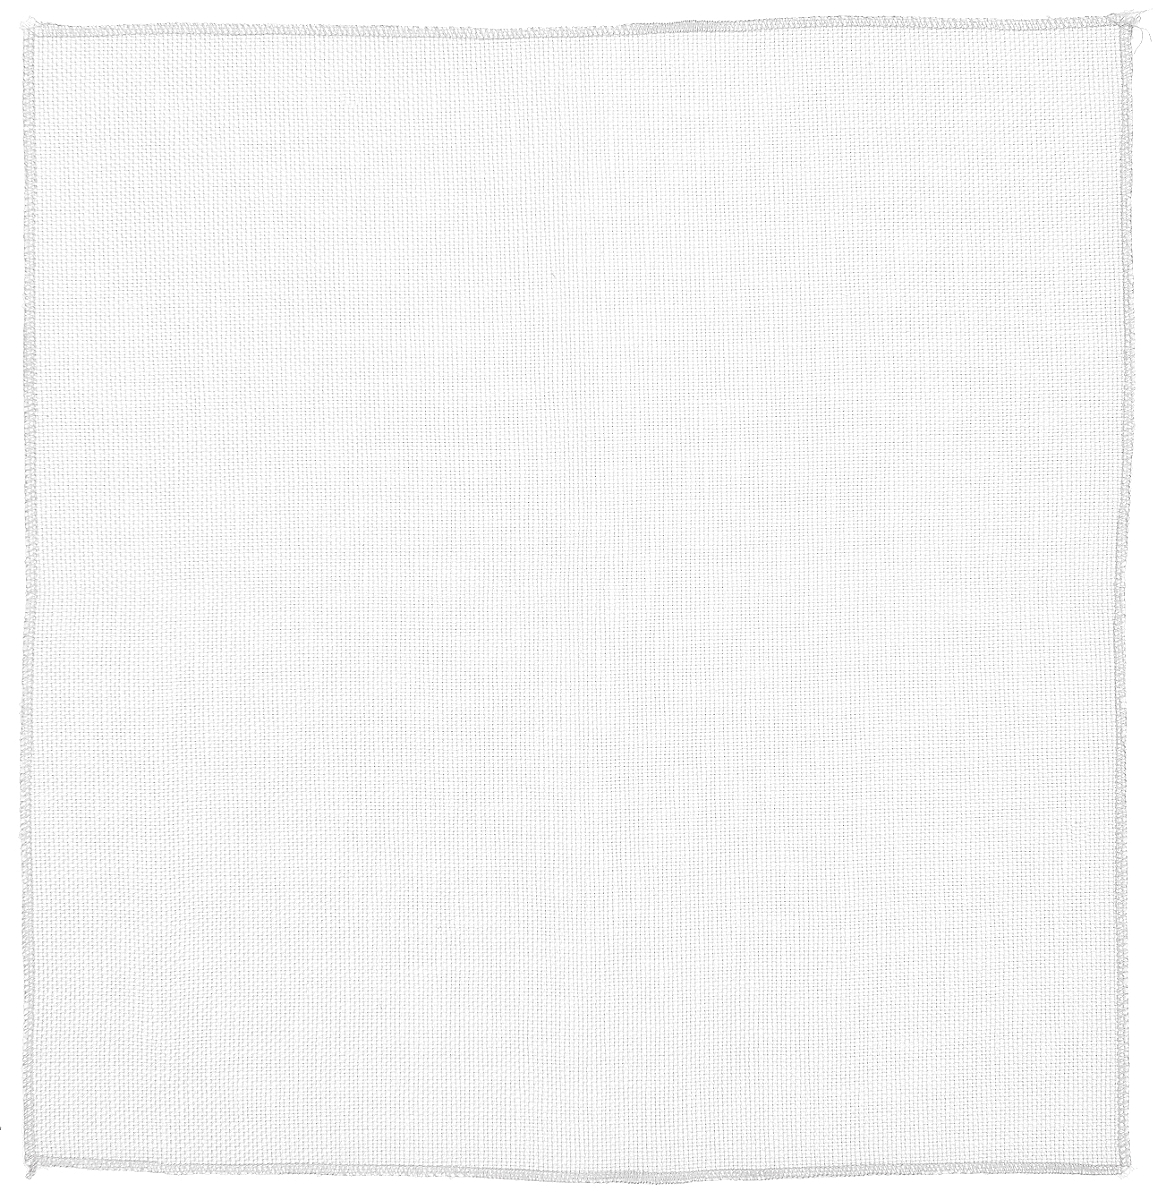 Basket: Bright White (fabric yardage)